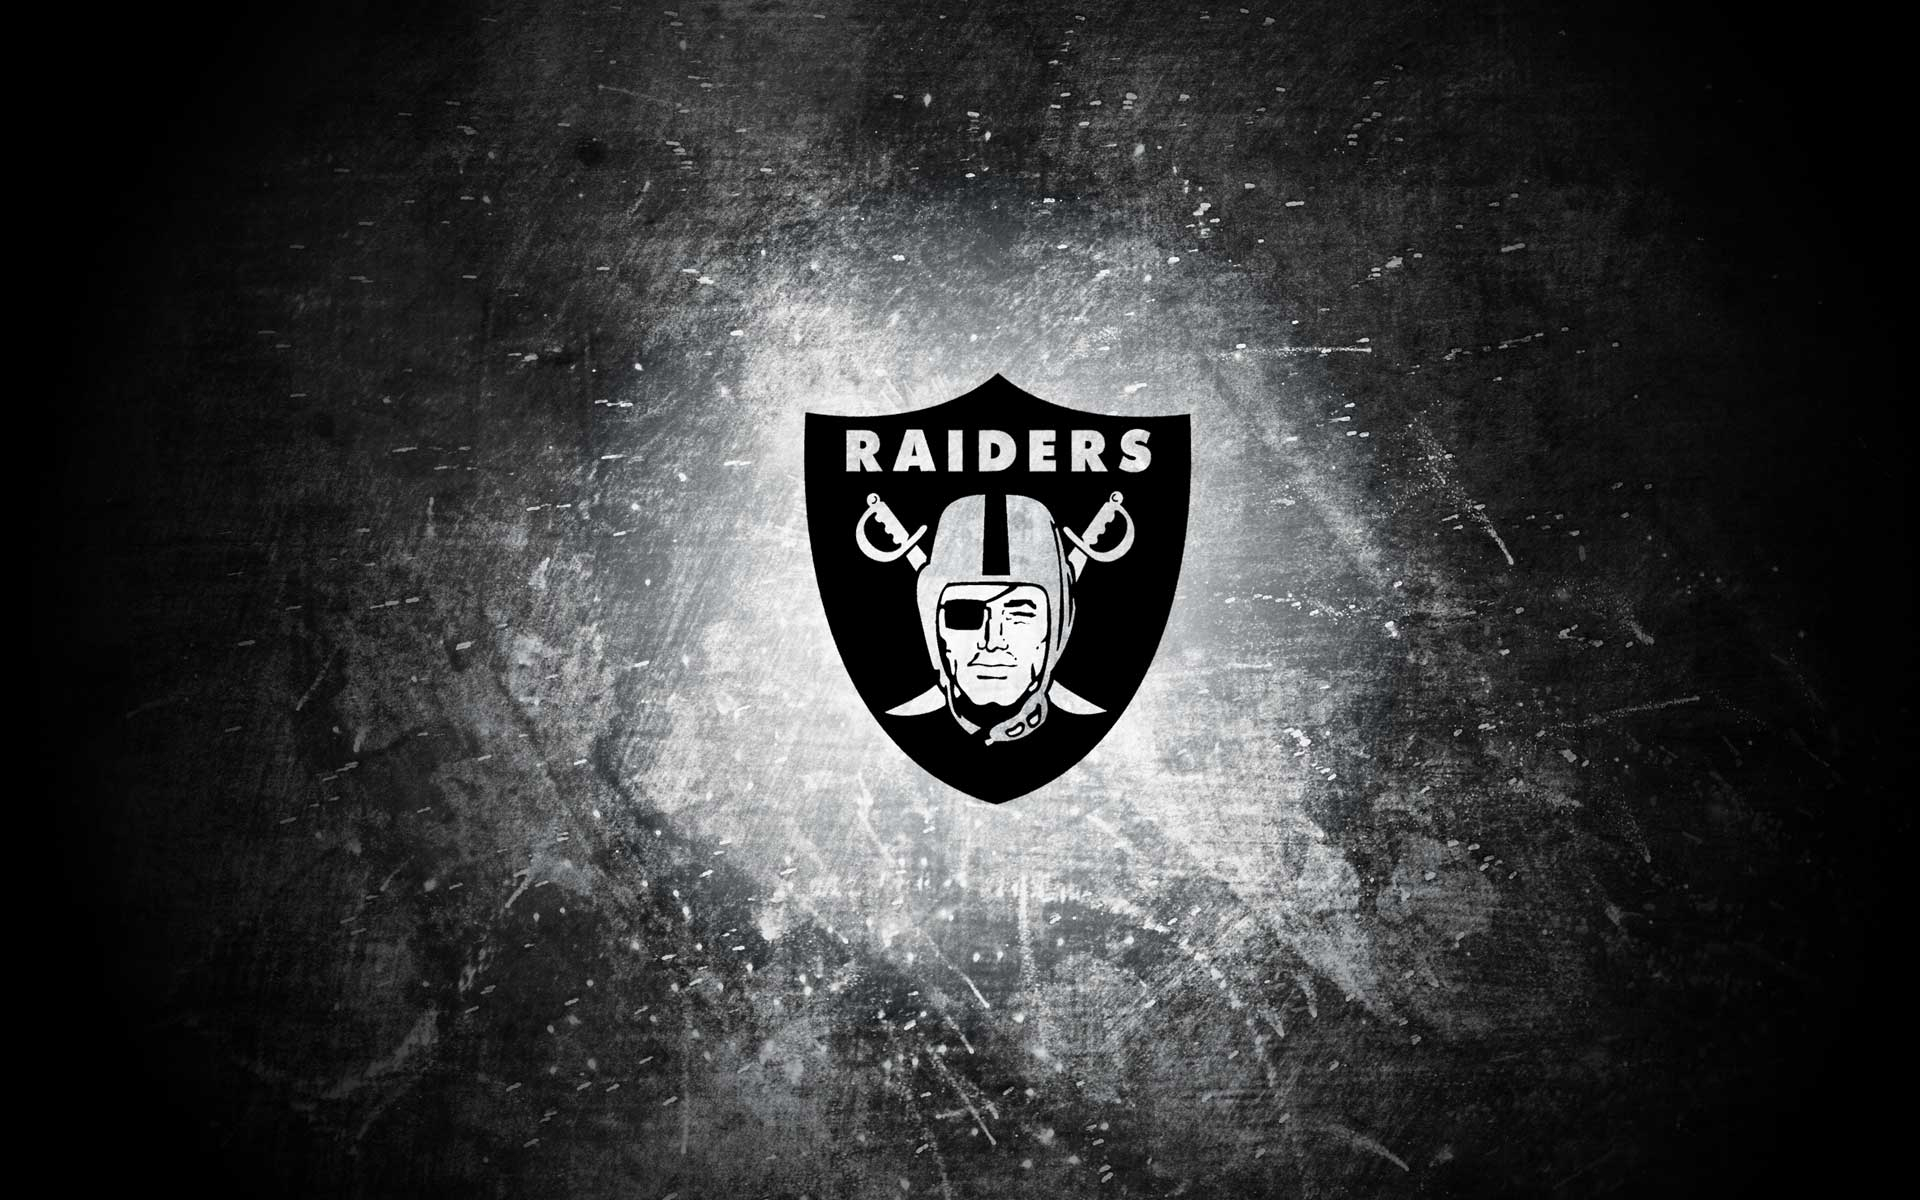 10 Latest Oakland Raiders Wallpaper Images FULL HD 1080p For PC Desktop